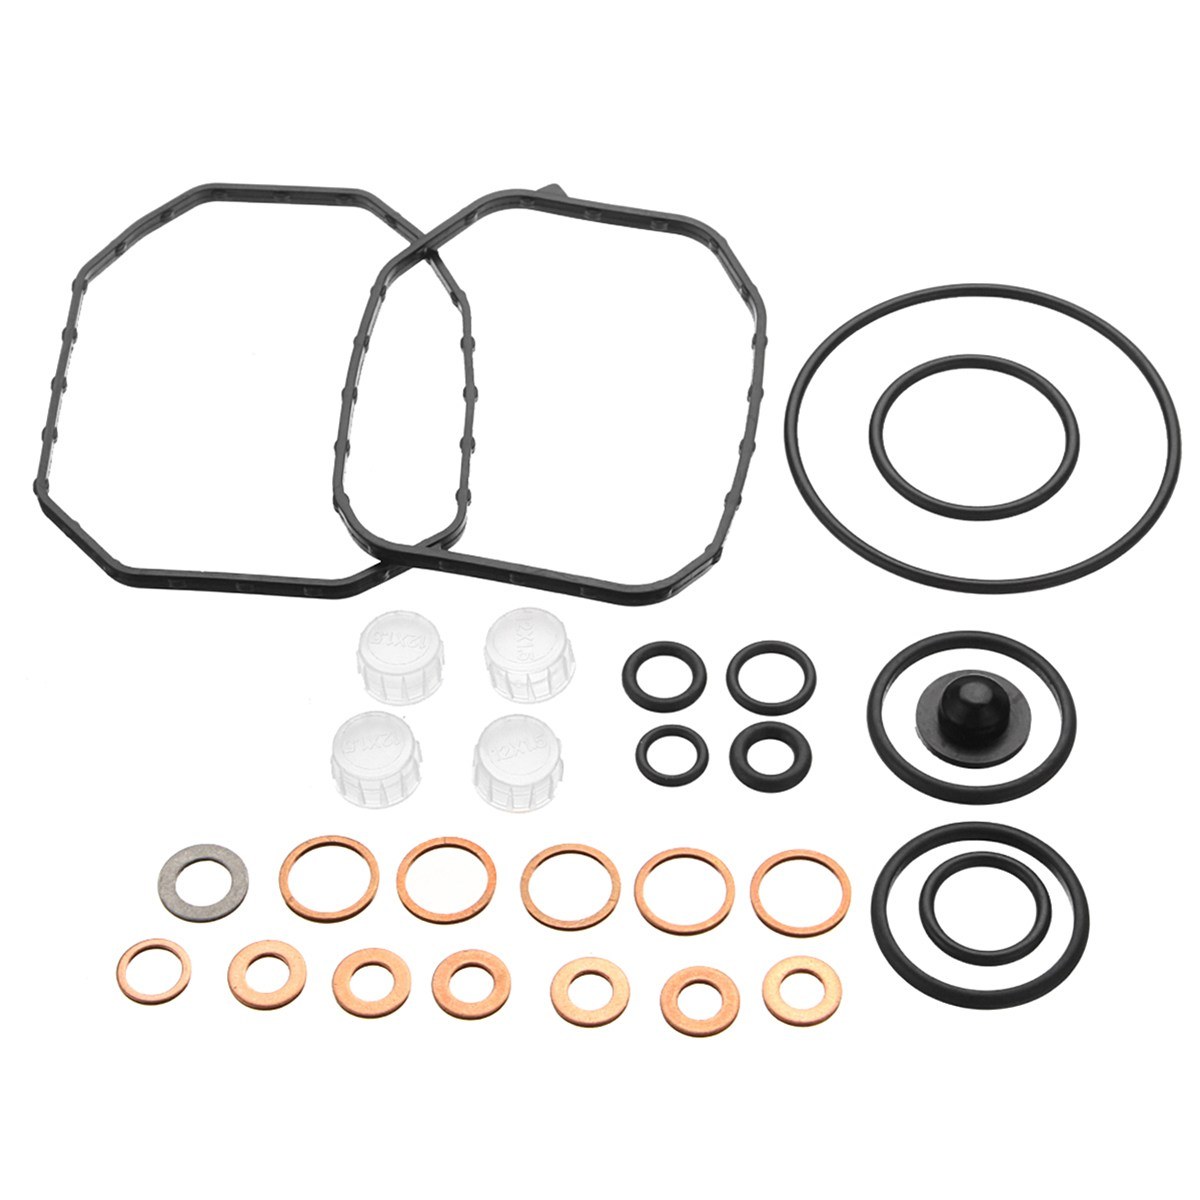 Injection Pump Repair Seal Kit For VW Beetle Golf Jetta for Audi 1.9 TDI 2467010003